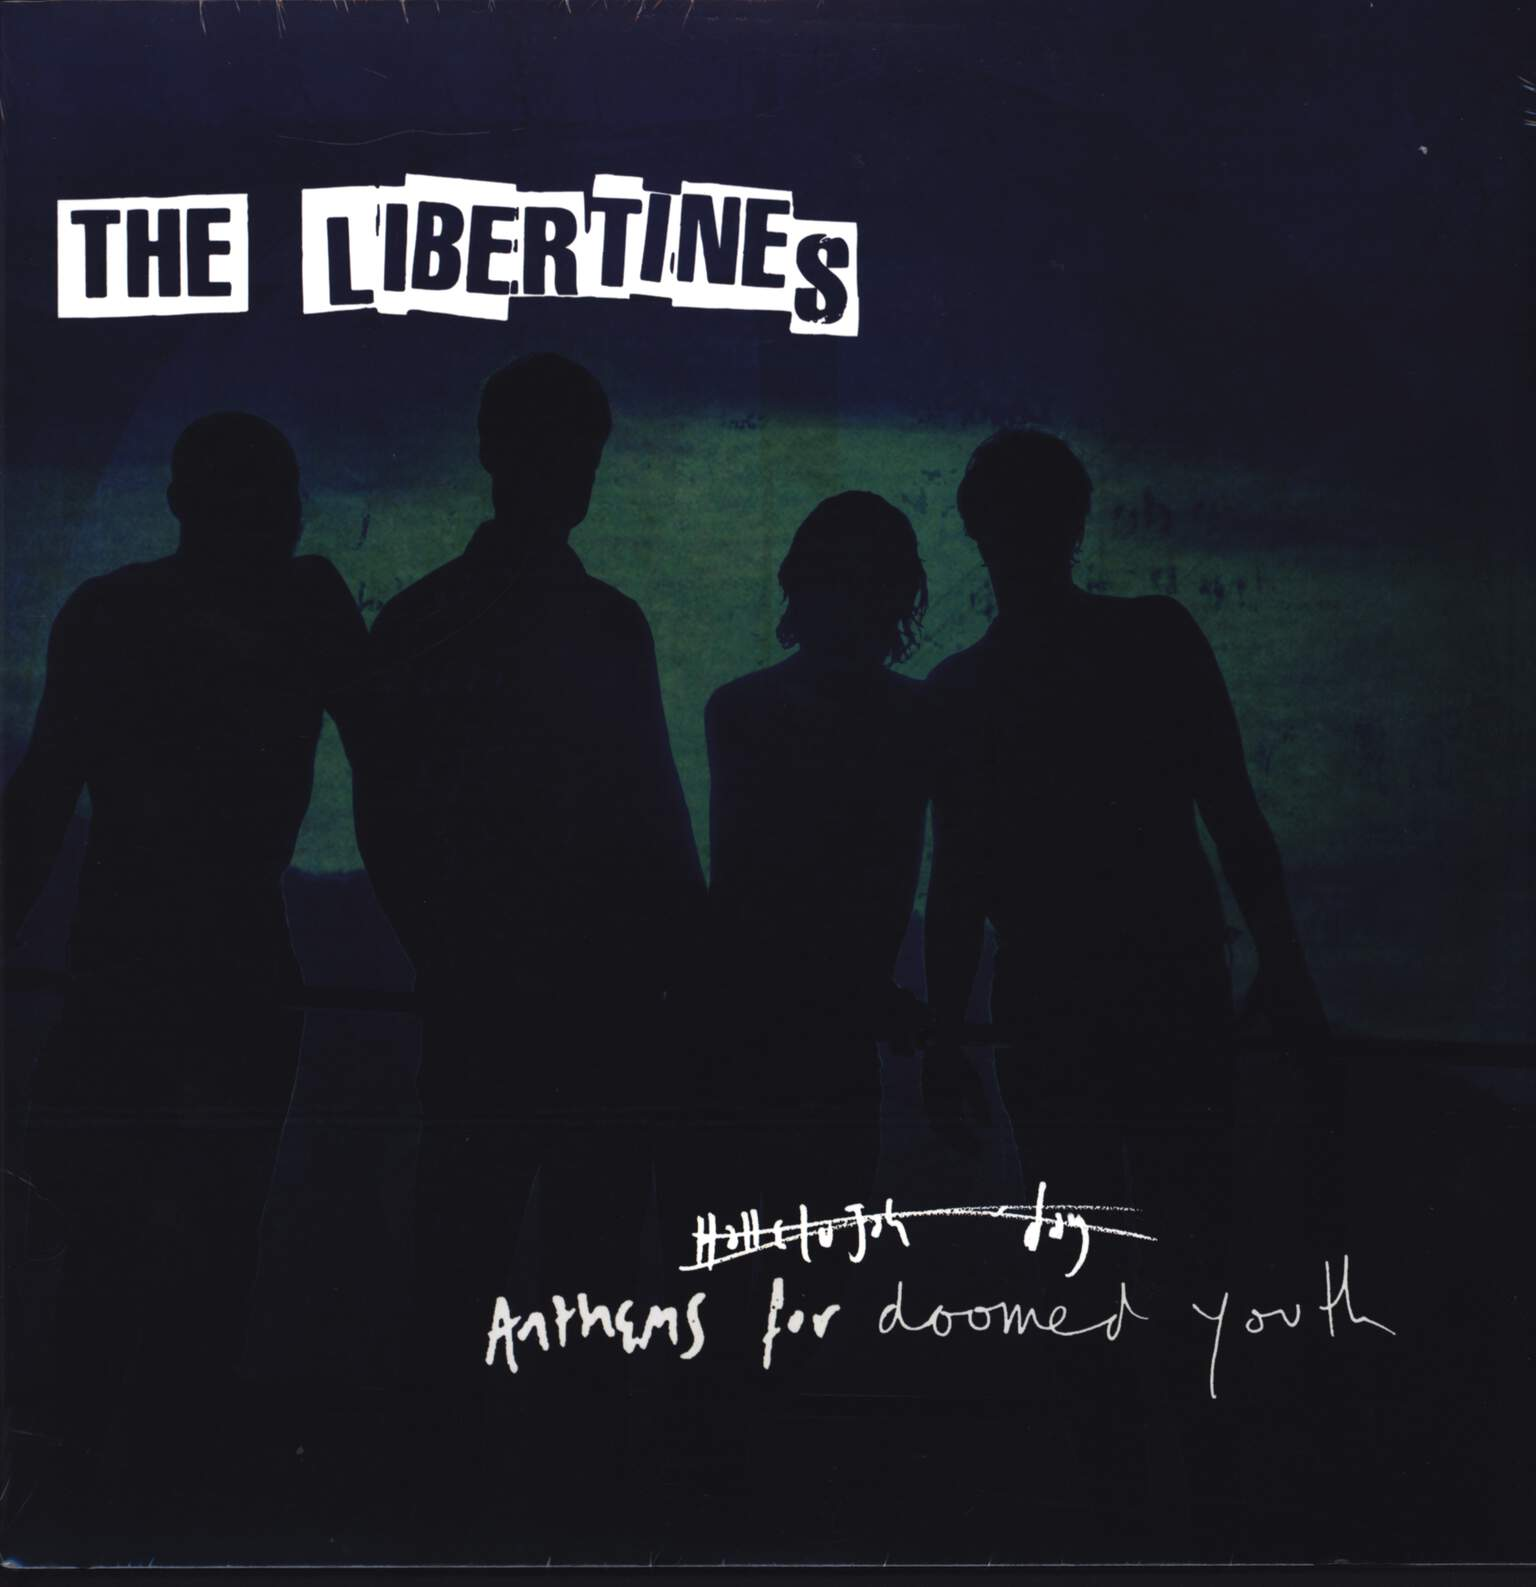 The Libertines: Anthems For Doomed Youth, 1×LP (Vinyl)